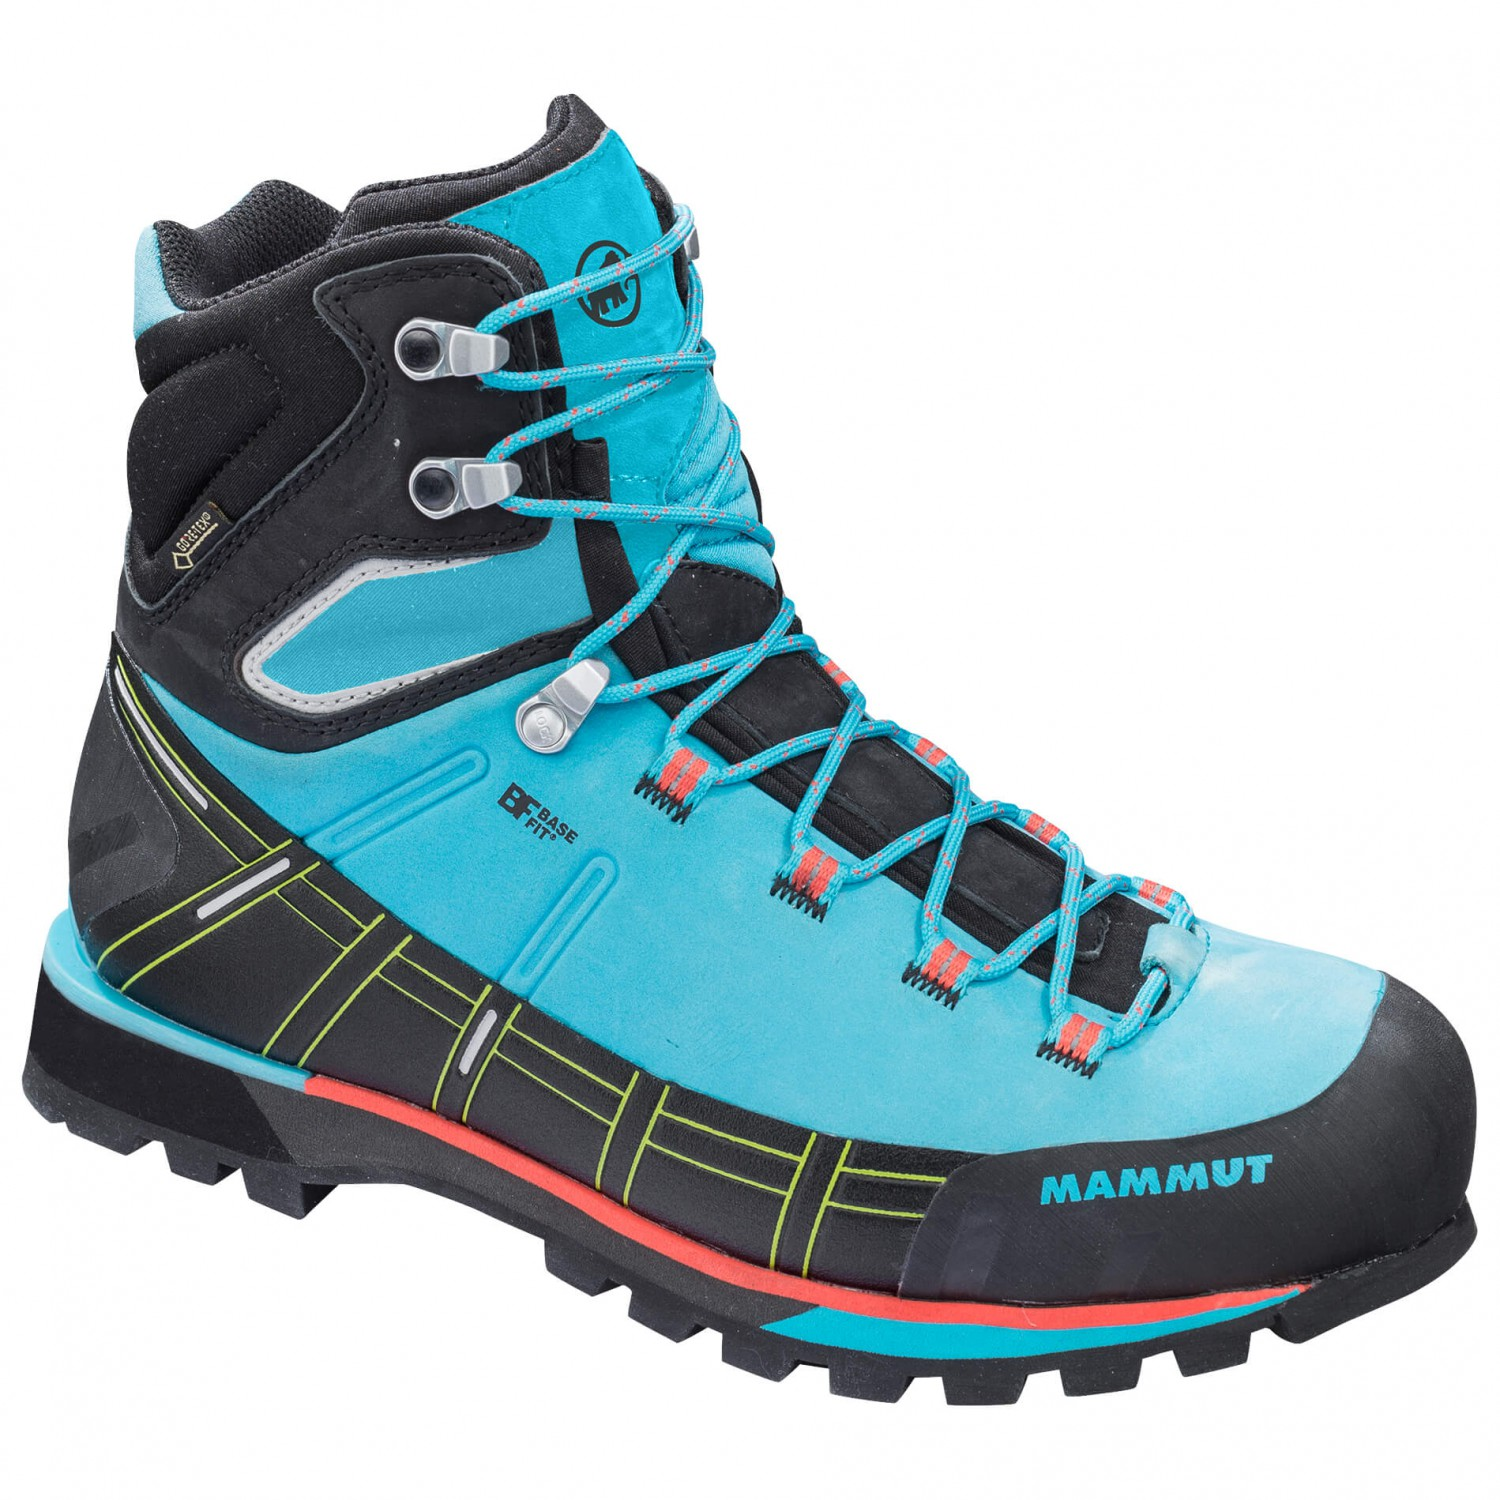 Mammut - Kento High GTX Women - Bergschuhe Arctic / Black